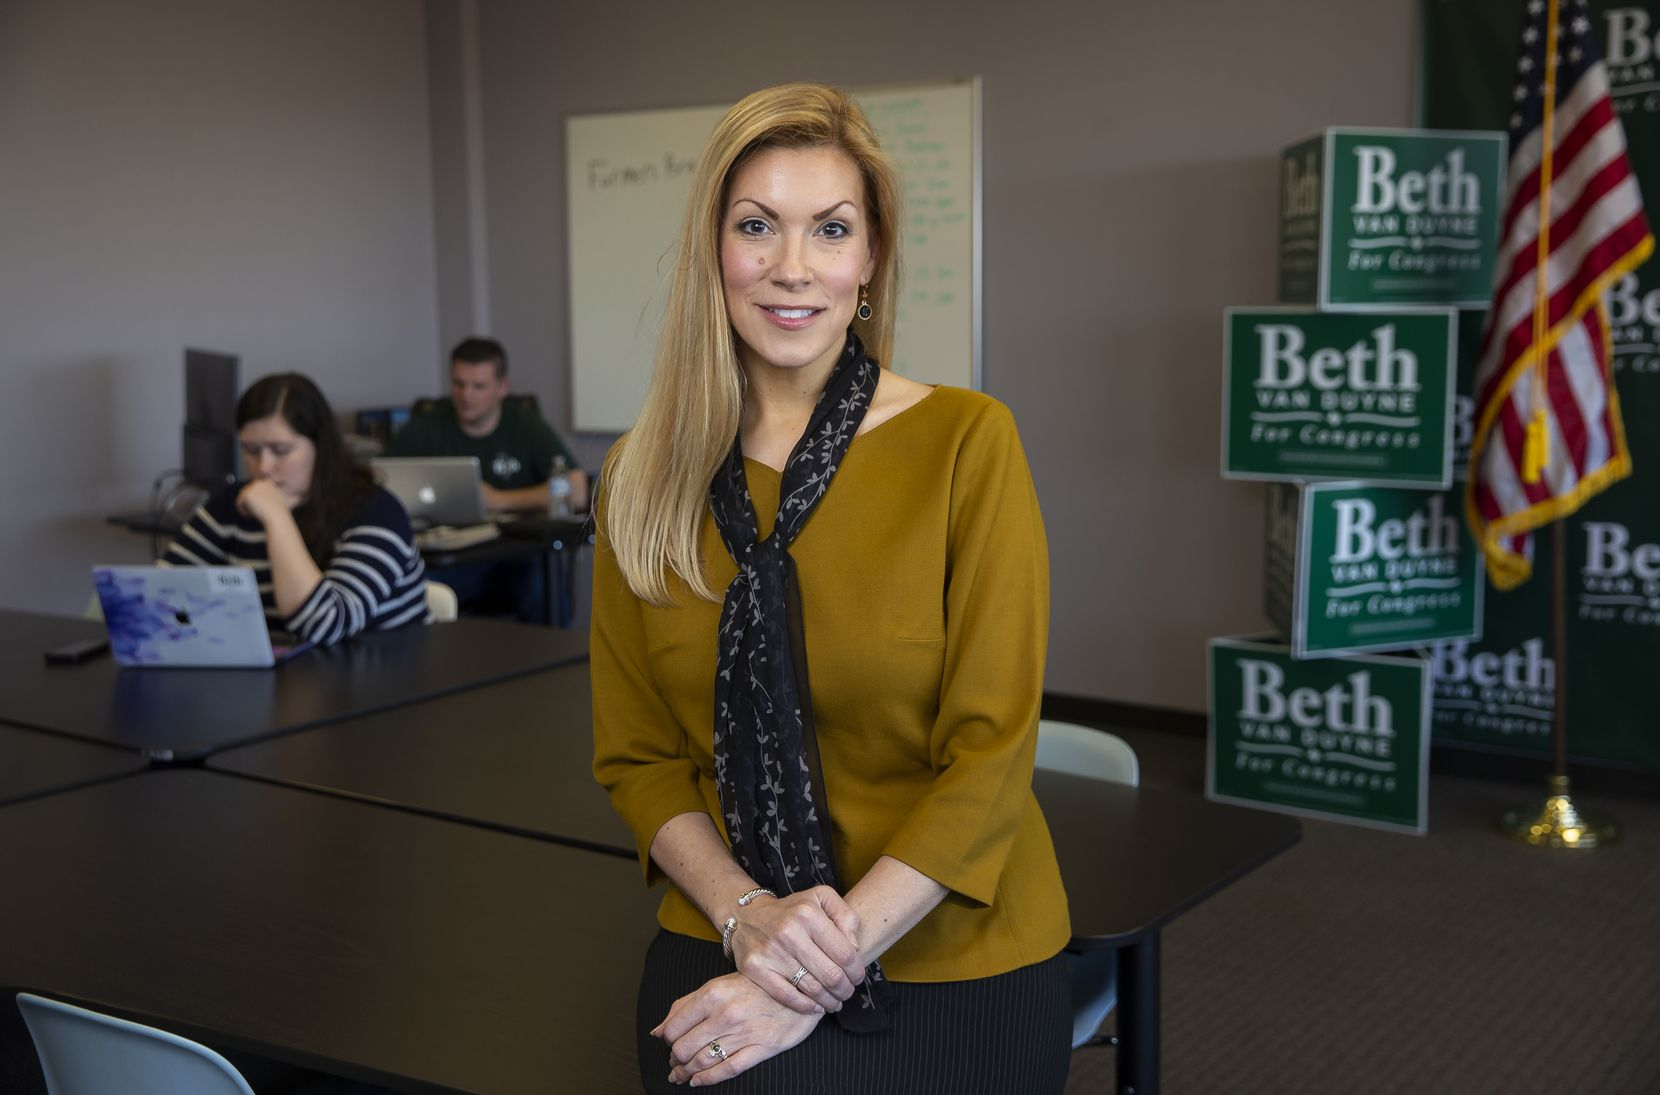 Beth Van Duyne, the former mayor of Irving who's running for the 24th Congressional District, poses for a photo at her campaign headquarters in Grapevine.